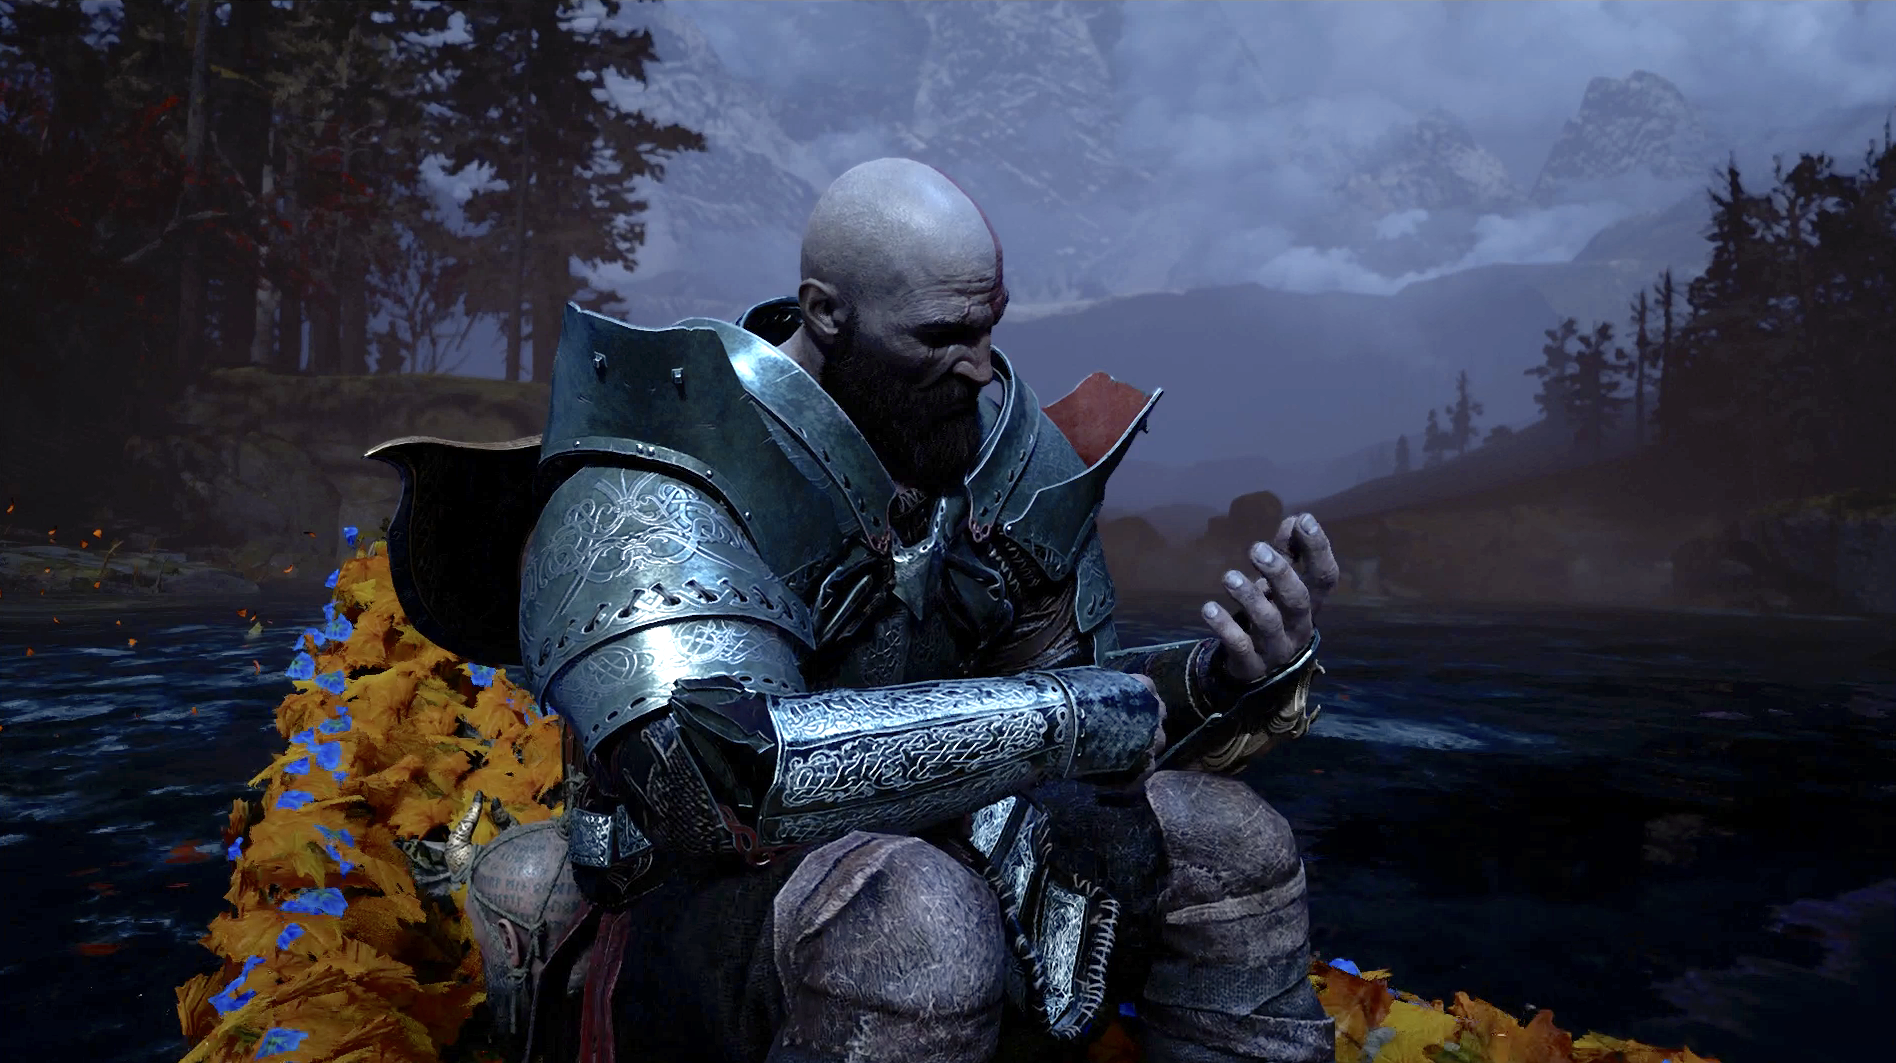 Let's Talk About THAT Scene From God Of War